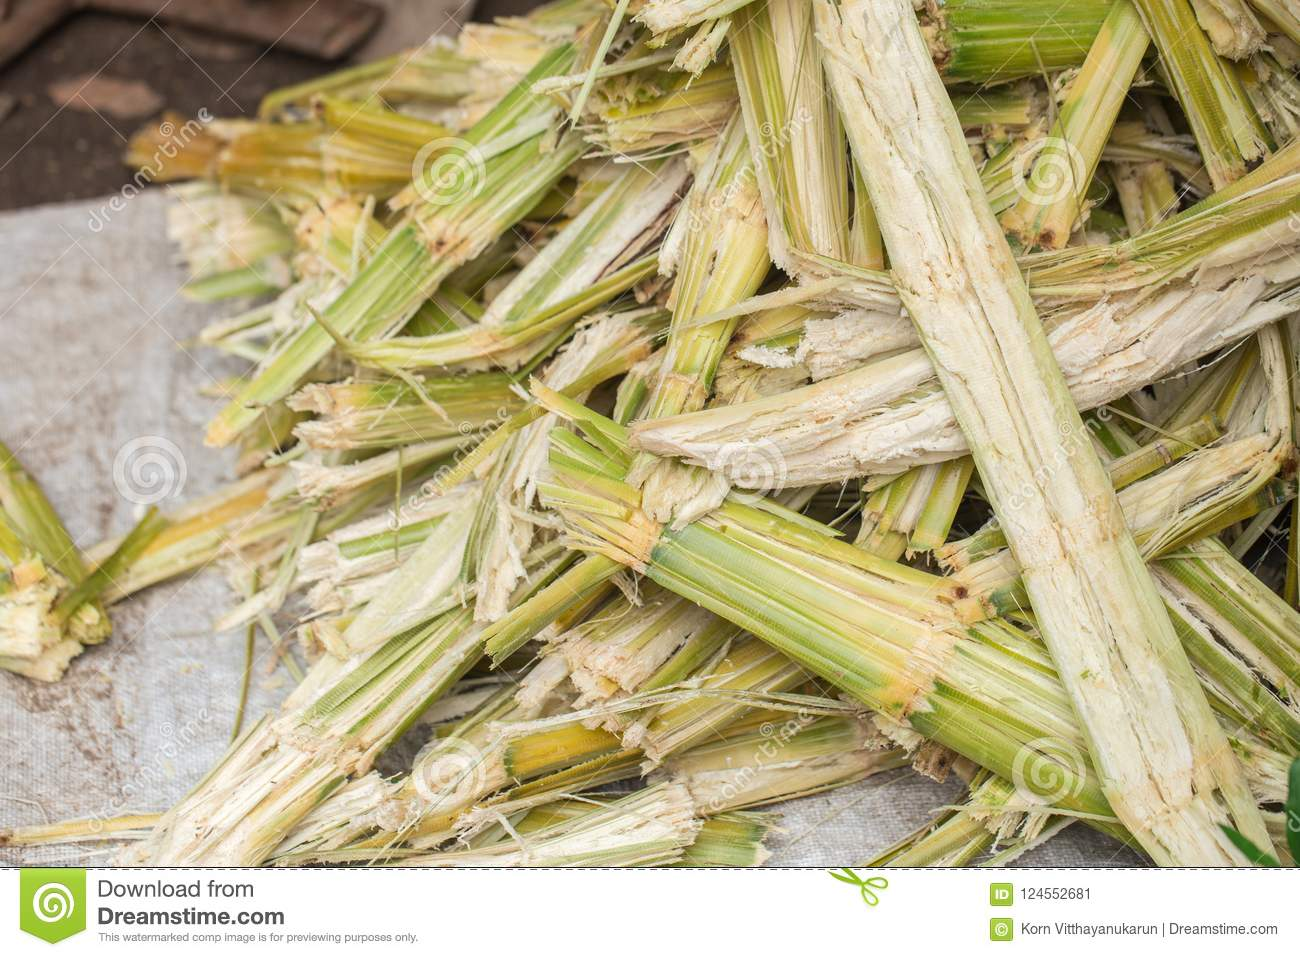 Sugar cane natural cellulose fibers and source of Ethanol biofuel